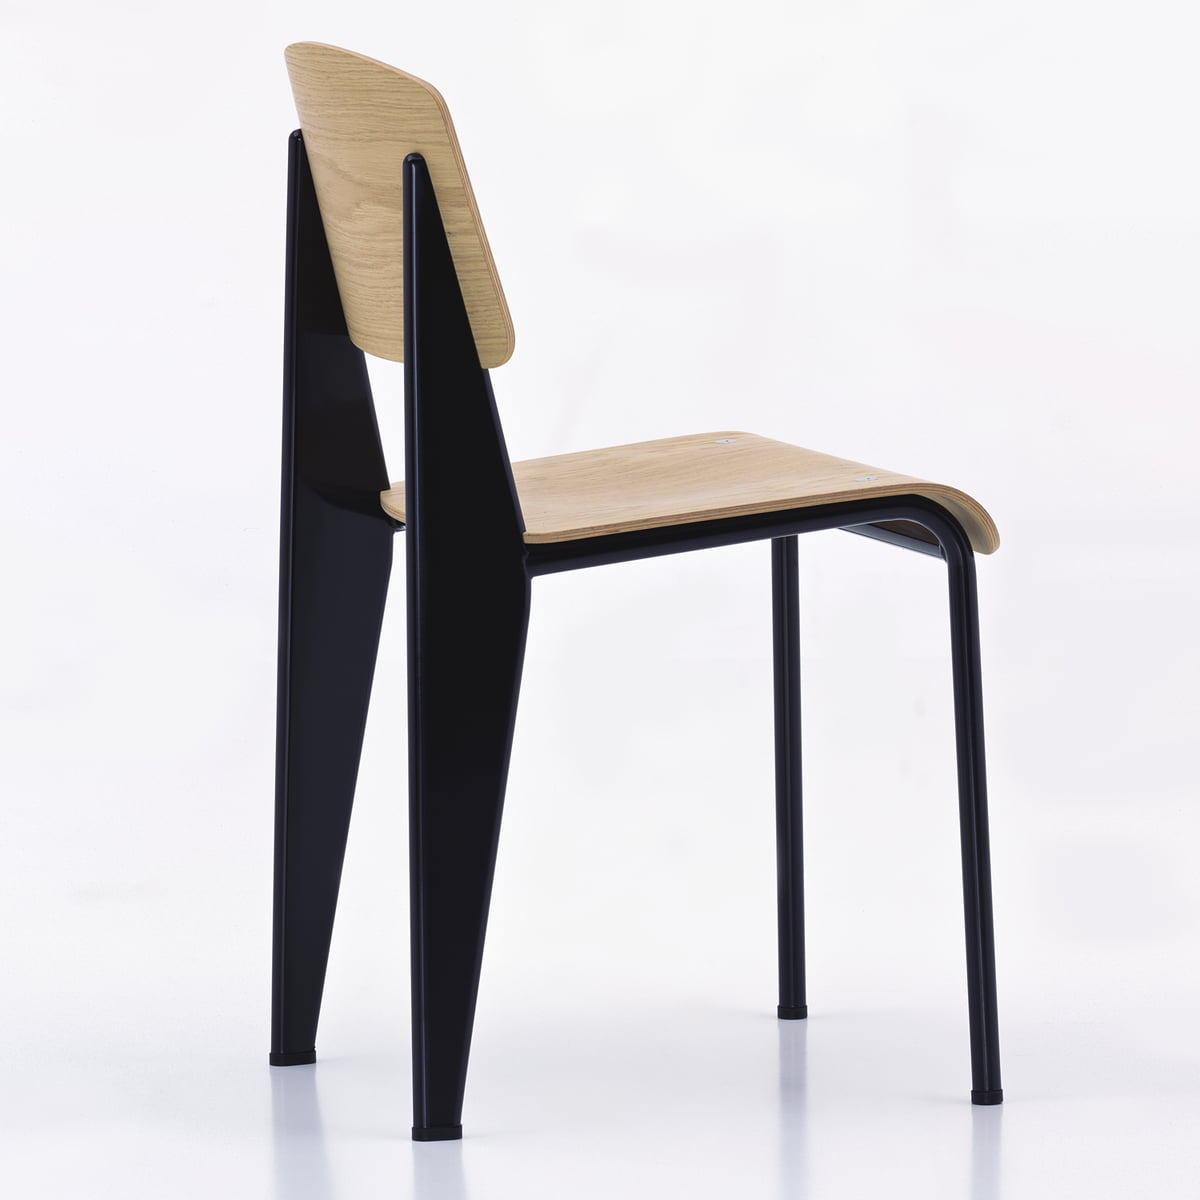 The Standard Stuhl By Vitra In The Shop